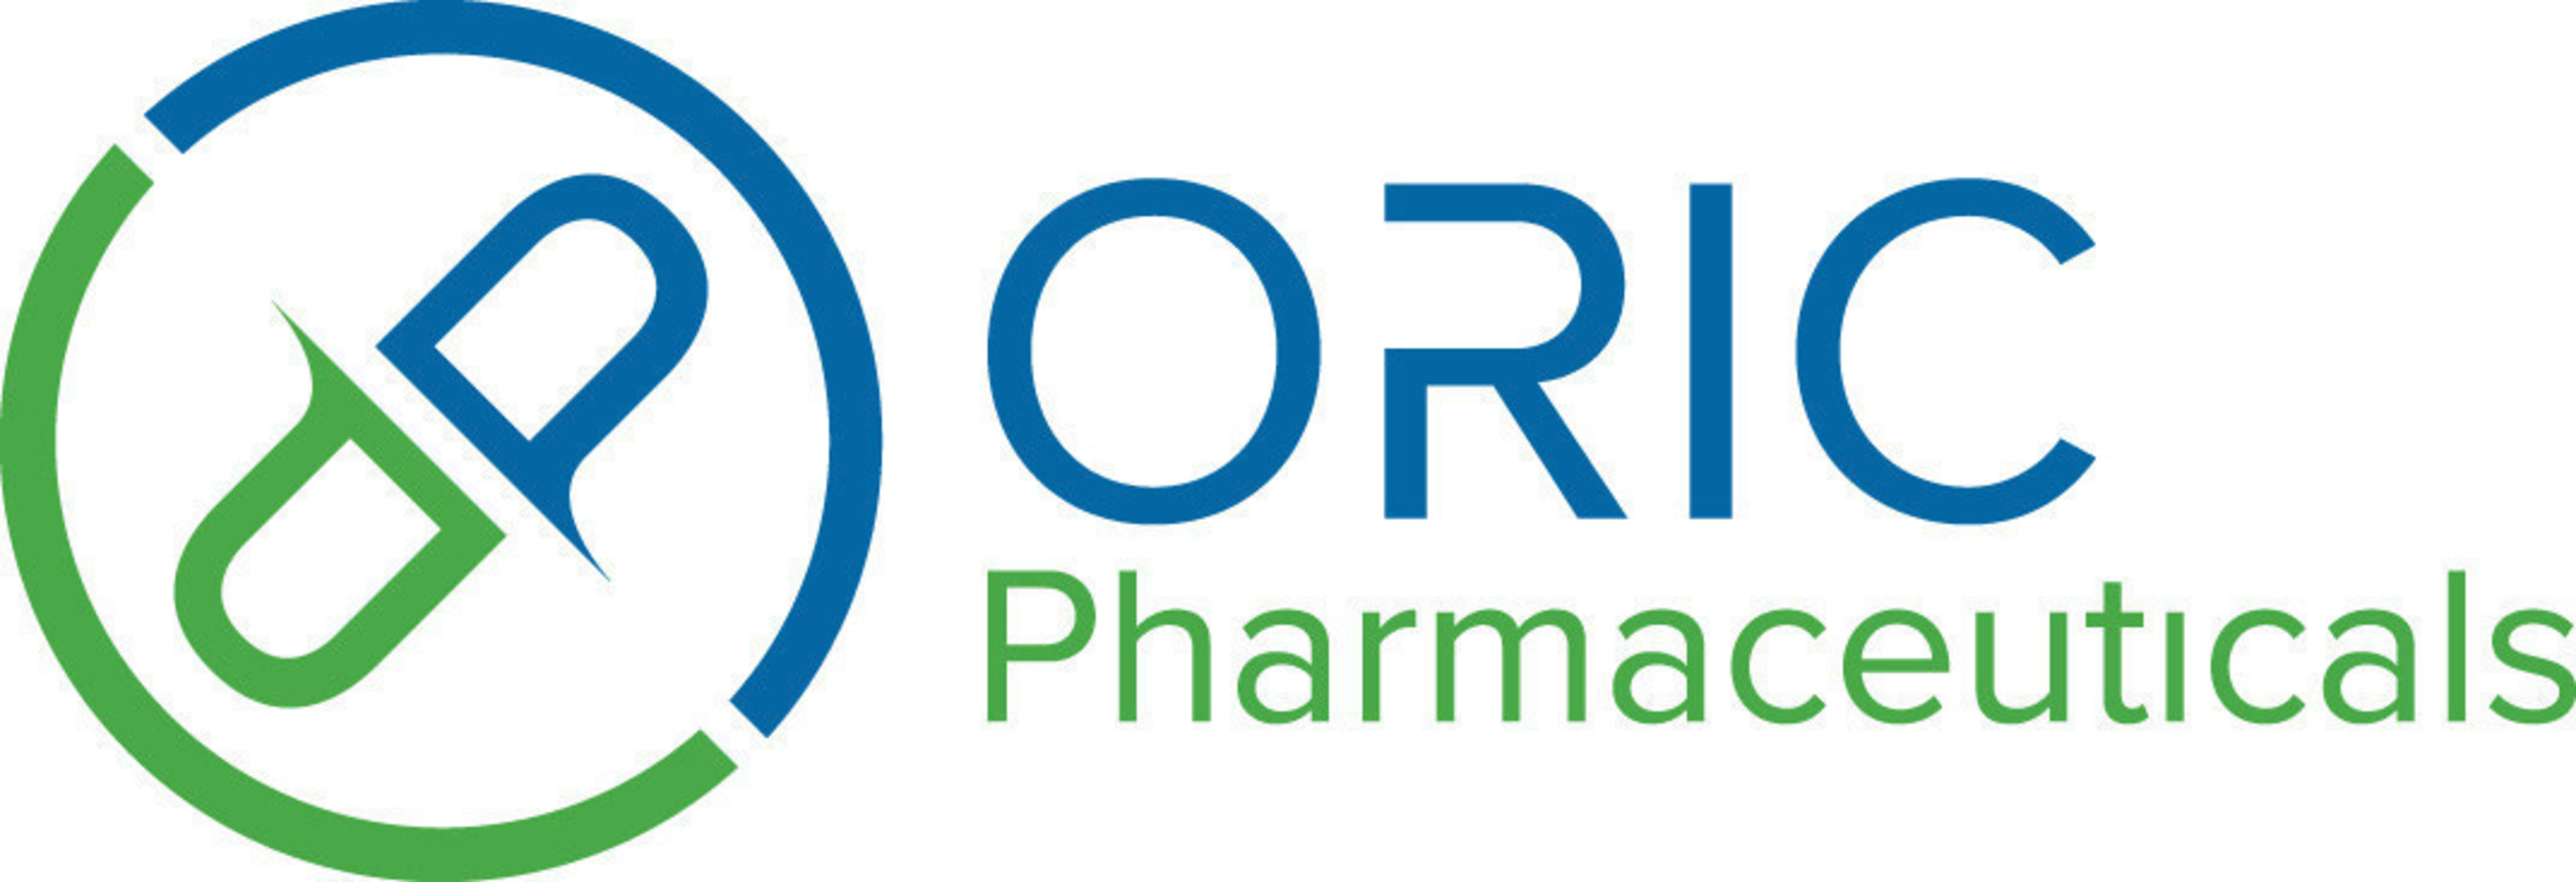 ORIC Pharmaceuticals Announces $53 Million Series B Financing to Support Discovery and Development of Novel Therapies for Treatment-Resistant Cancers